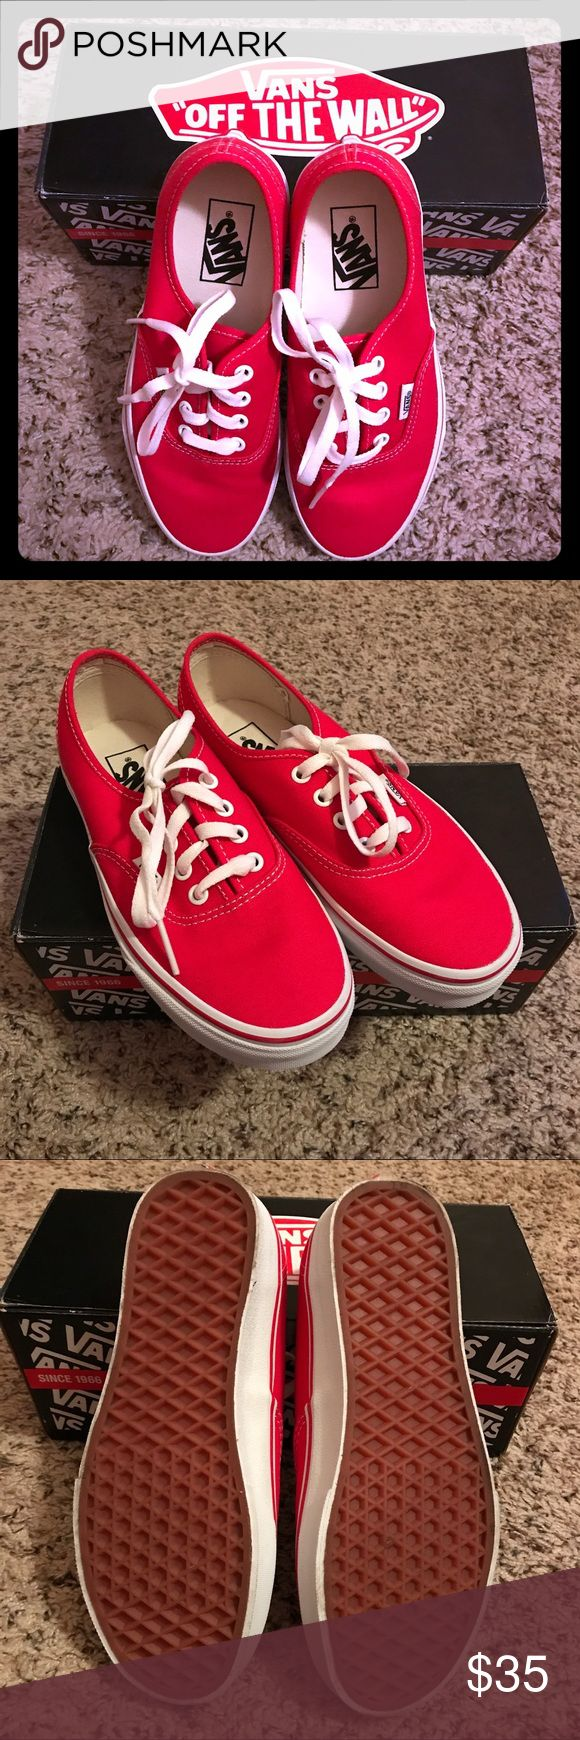 Vans red tennis shoes women's size 6.5 Van tennis shoes in red. Worn about an hour . Excellent to perfect condition. Size men's US size 5, women's size 6.5. Vans Shoes Sneakers